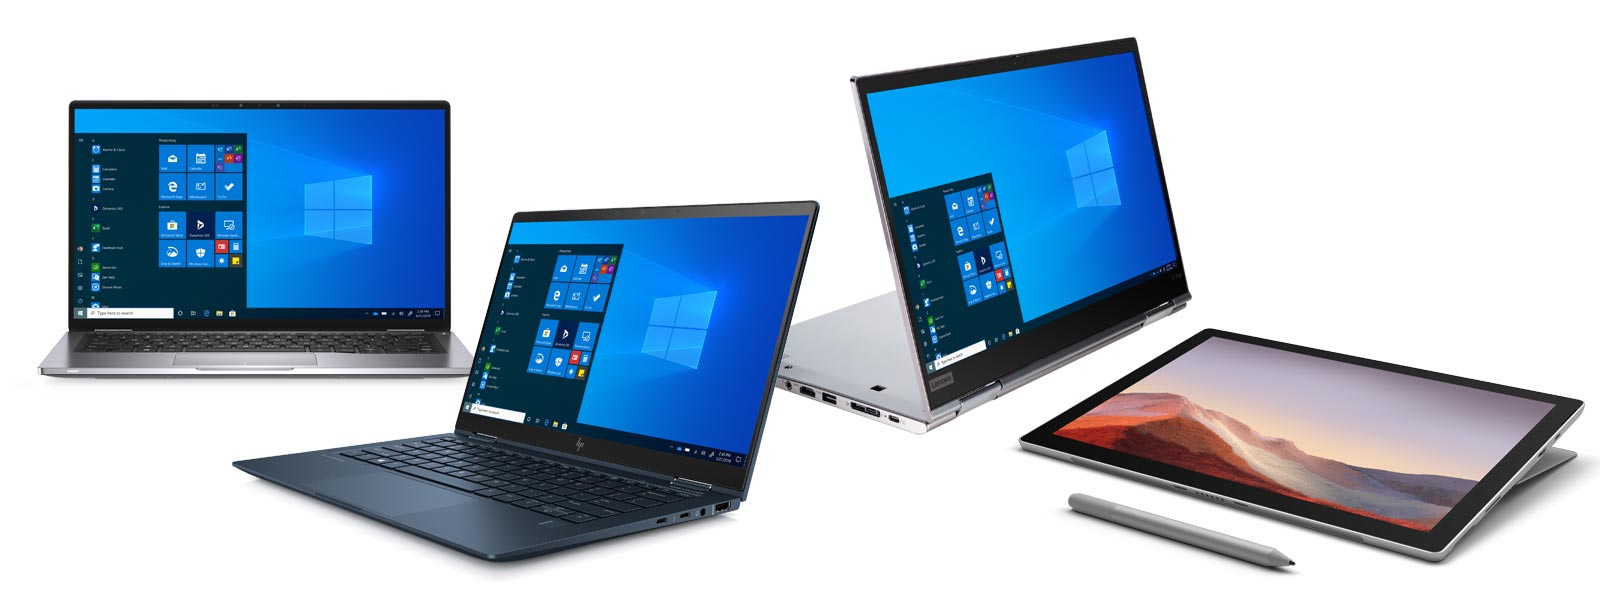 Four Windows 10 Pro devices at different angles